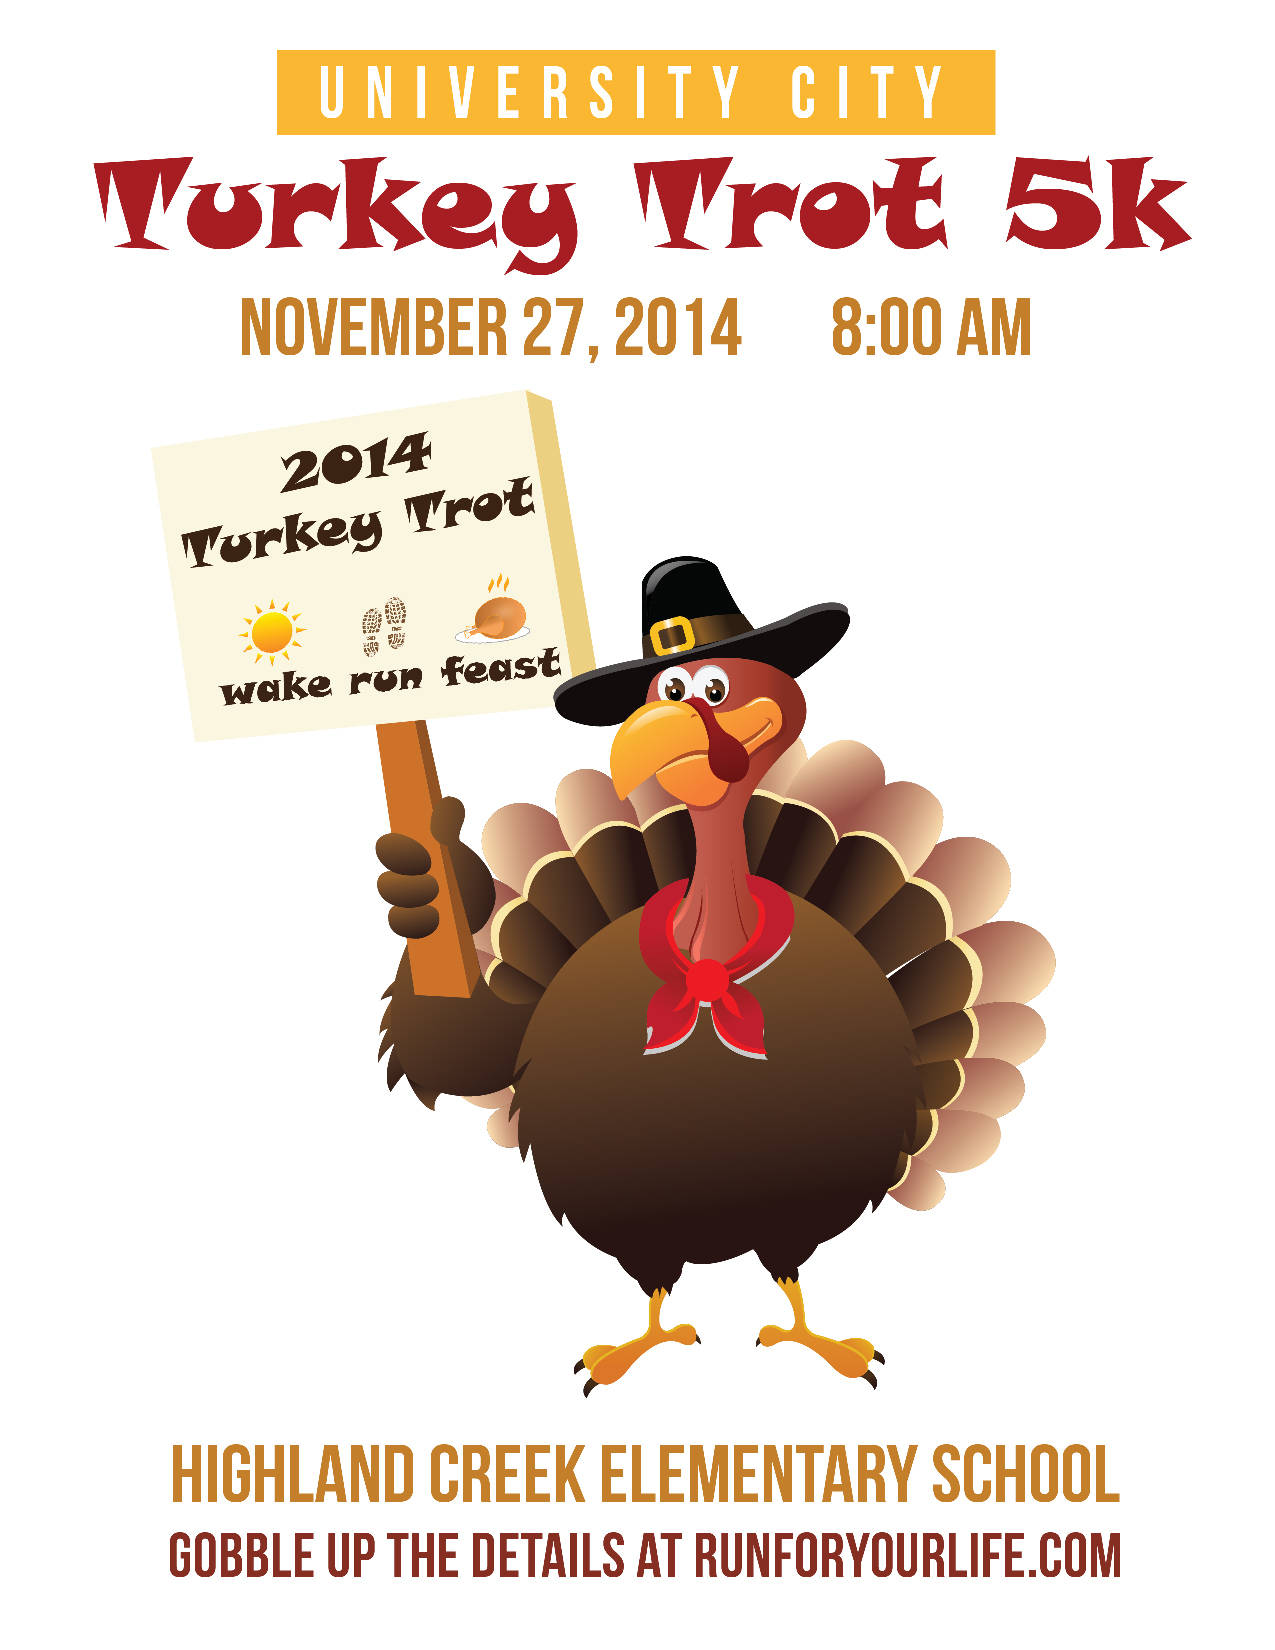 Turkey Day Hercules Style: Thanksgiving Day Turkey Trots In Charlotte, NC